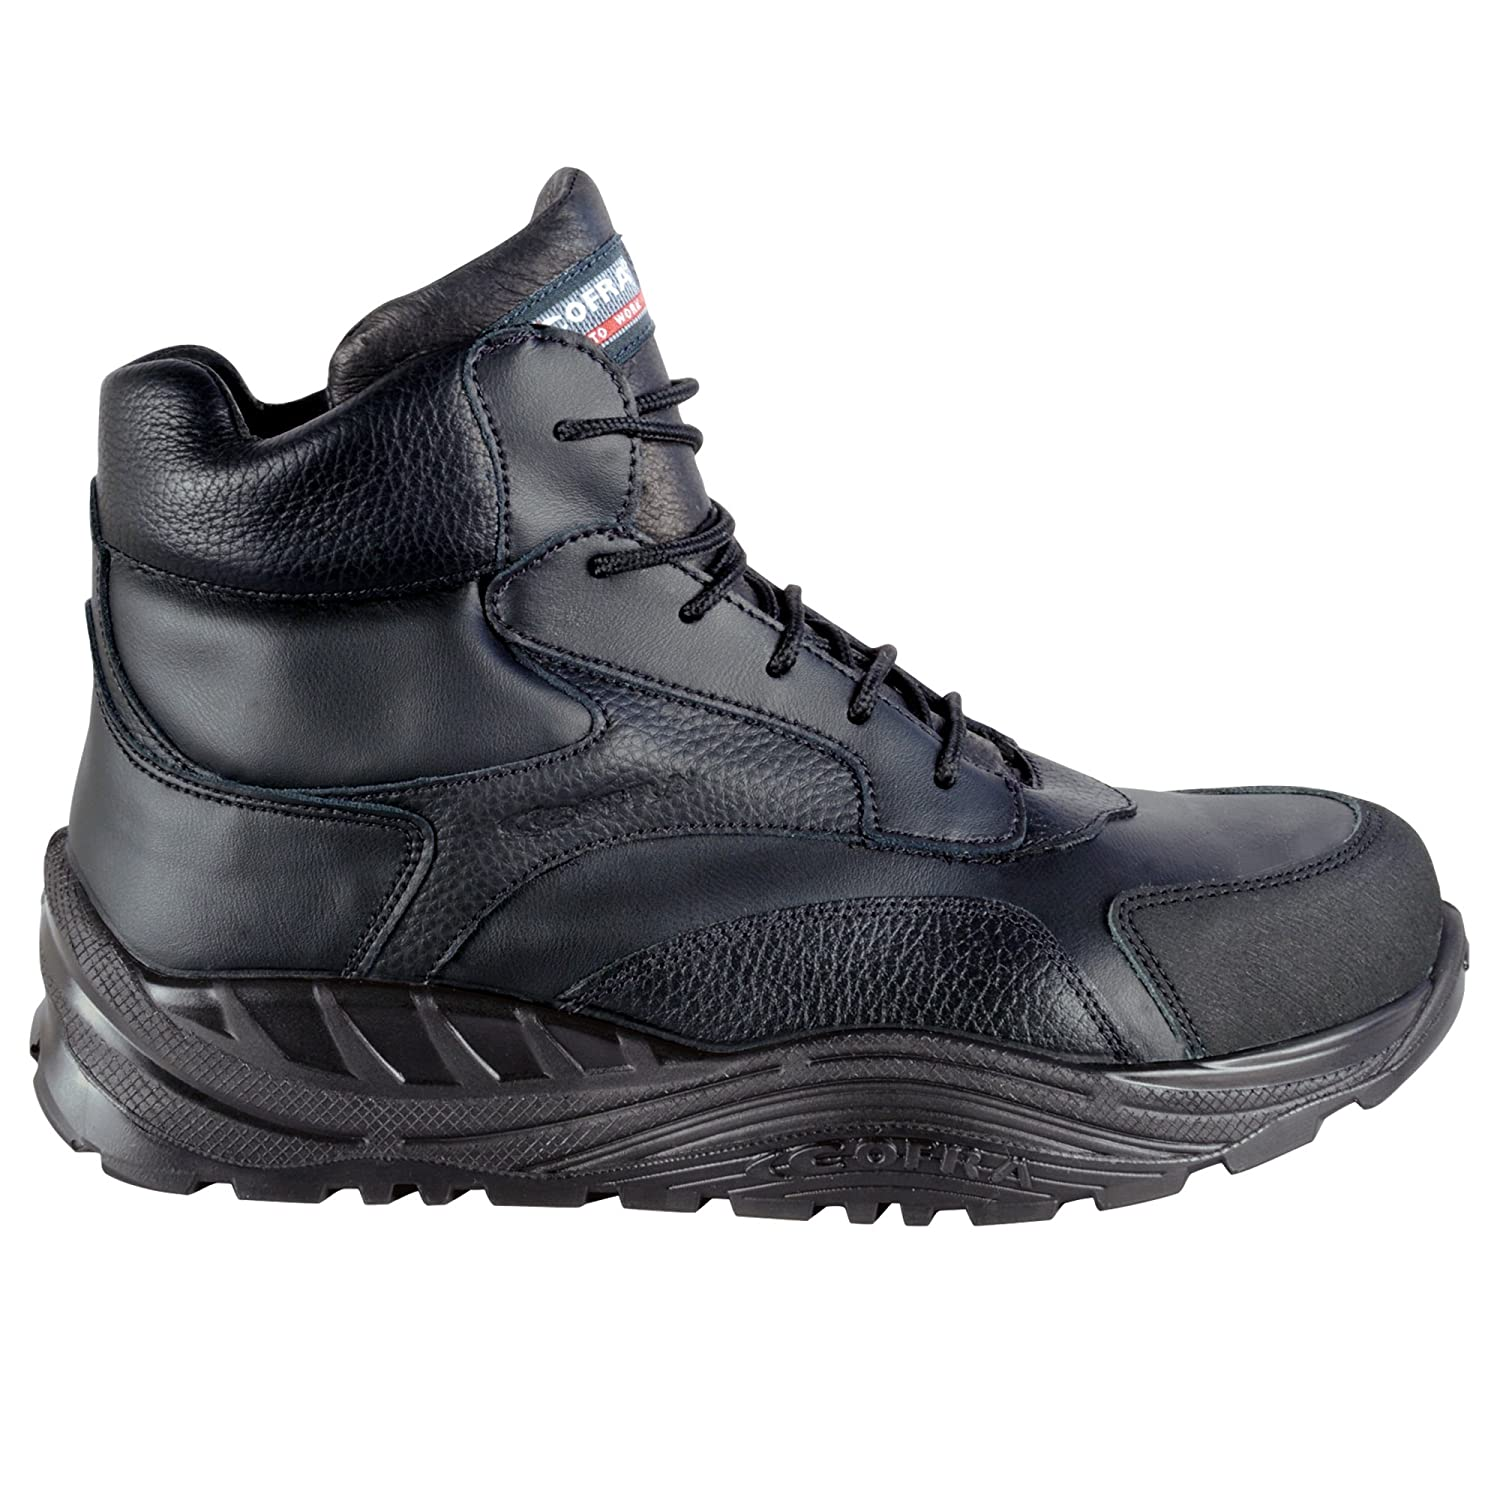 cf35ca61aaa Cofra Safety Boot Pushing S3 CI SRC Maxi Comfort 55120 Unisex High ...